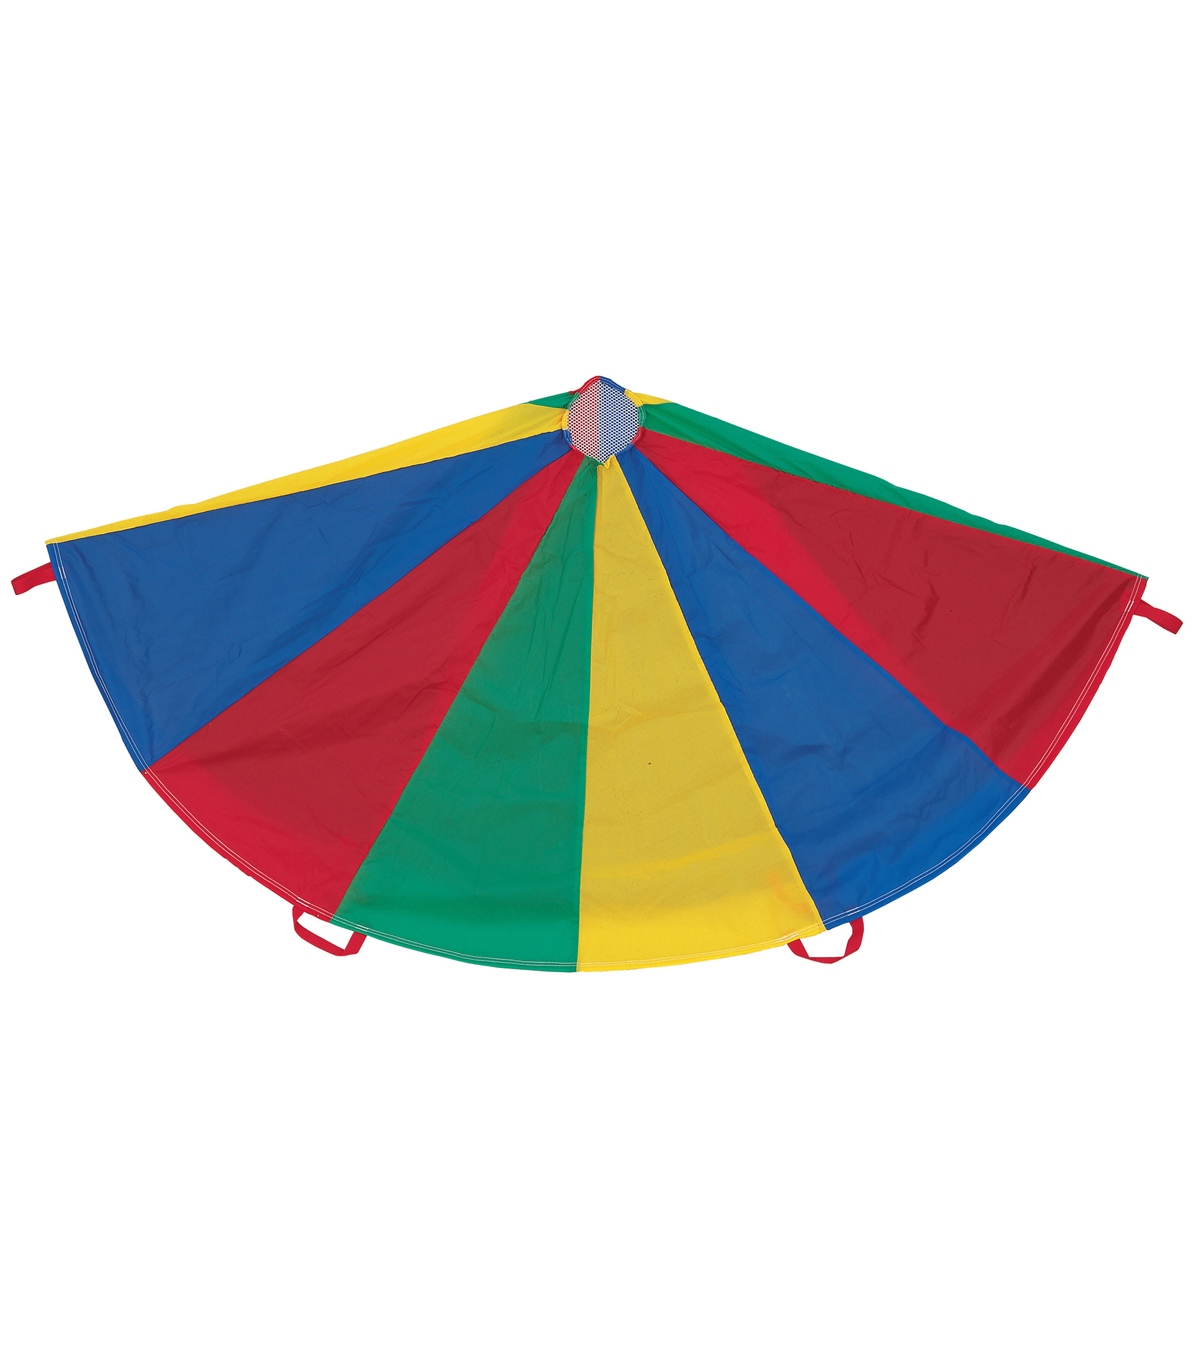 Multi-Colored Parachute, 12\u0027 Diameter, 12 Handles